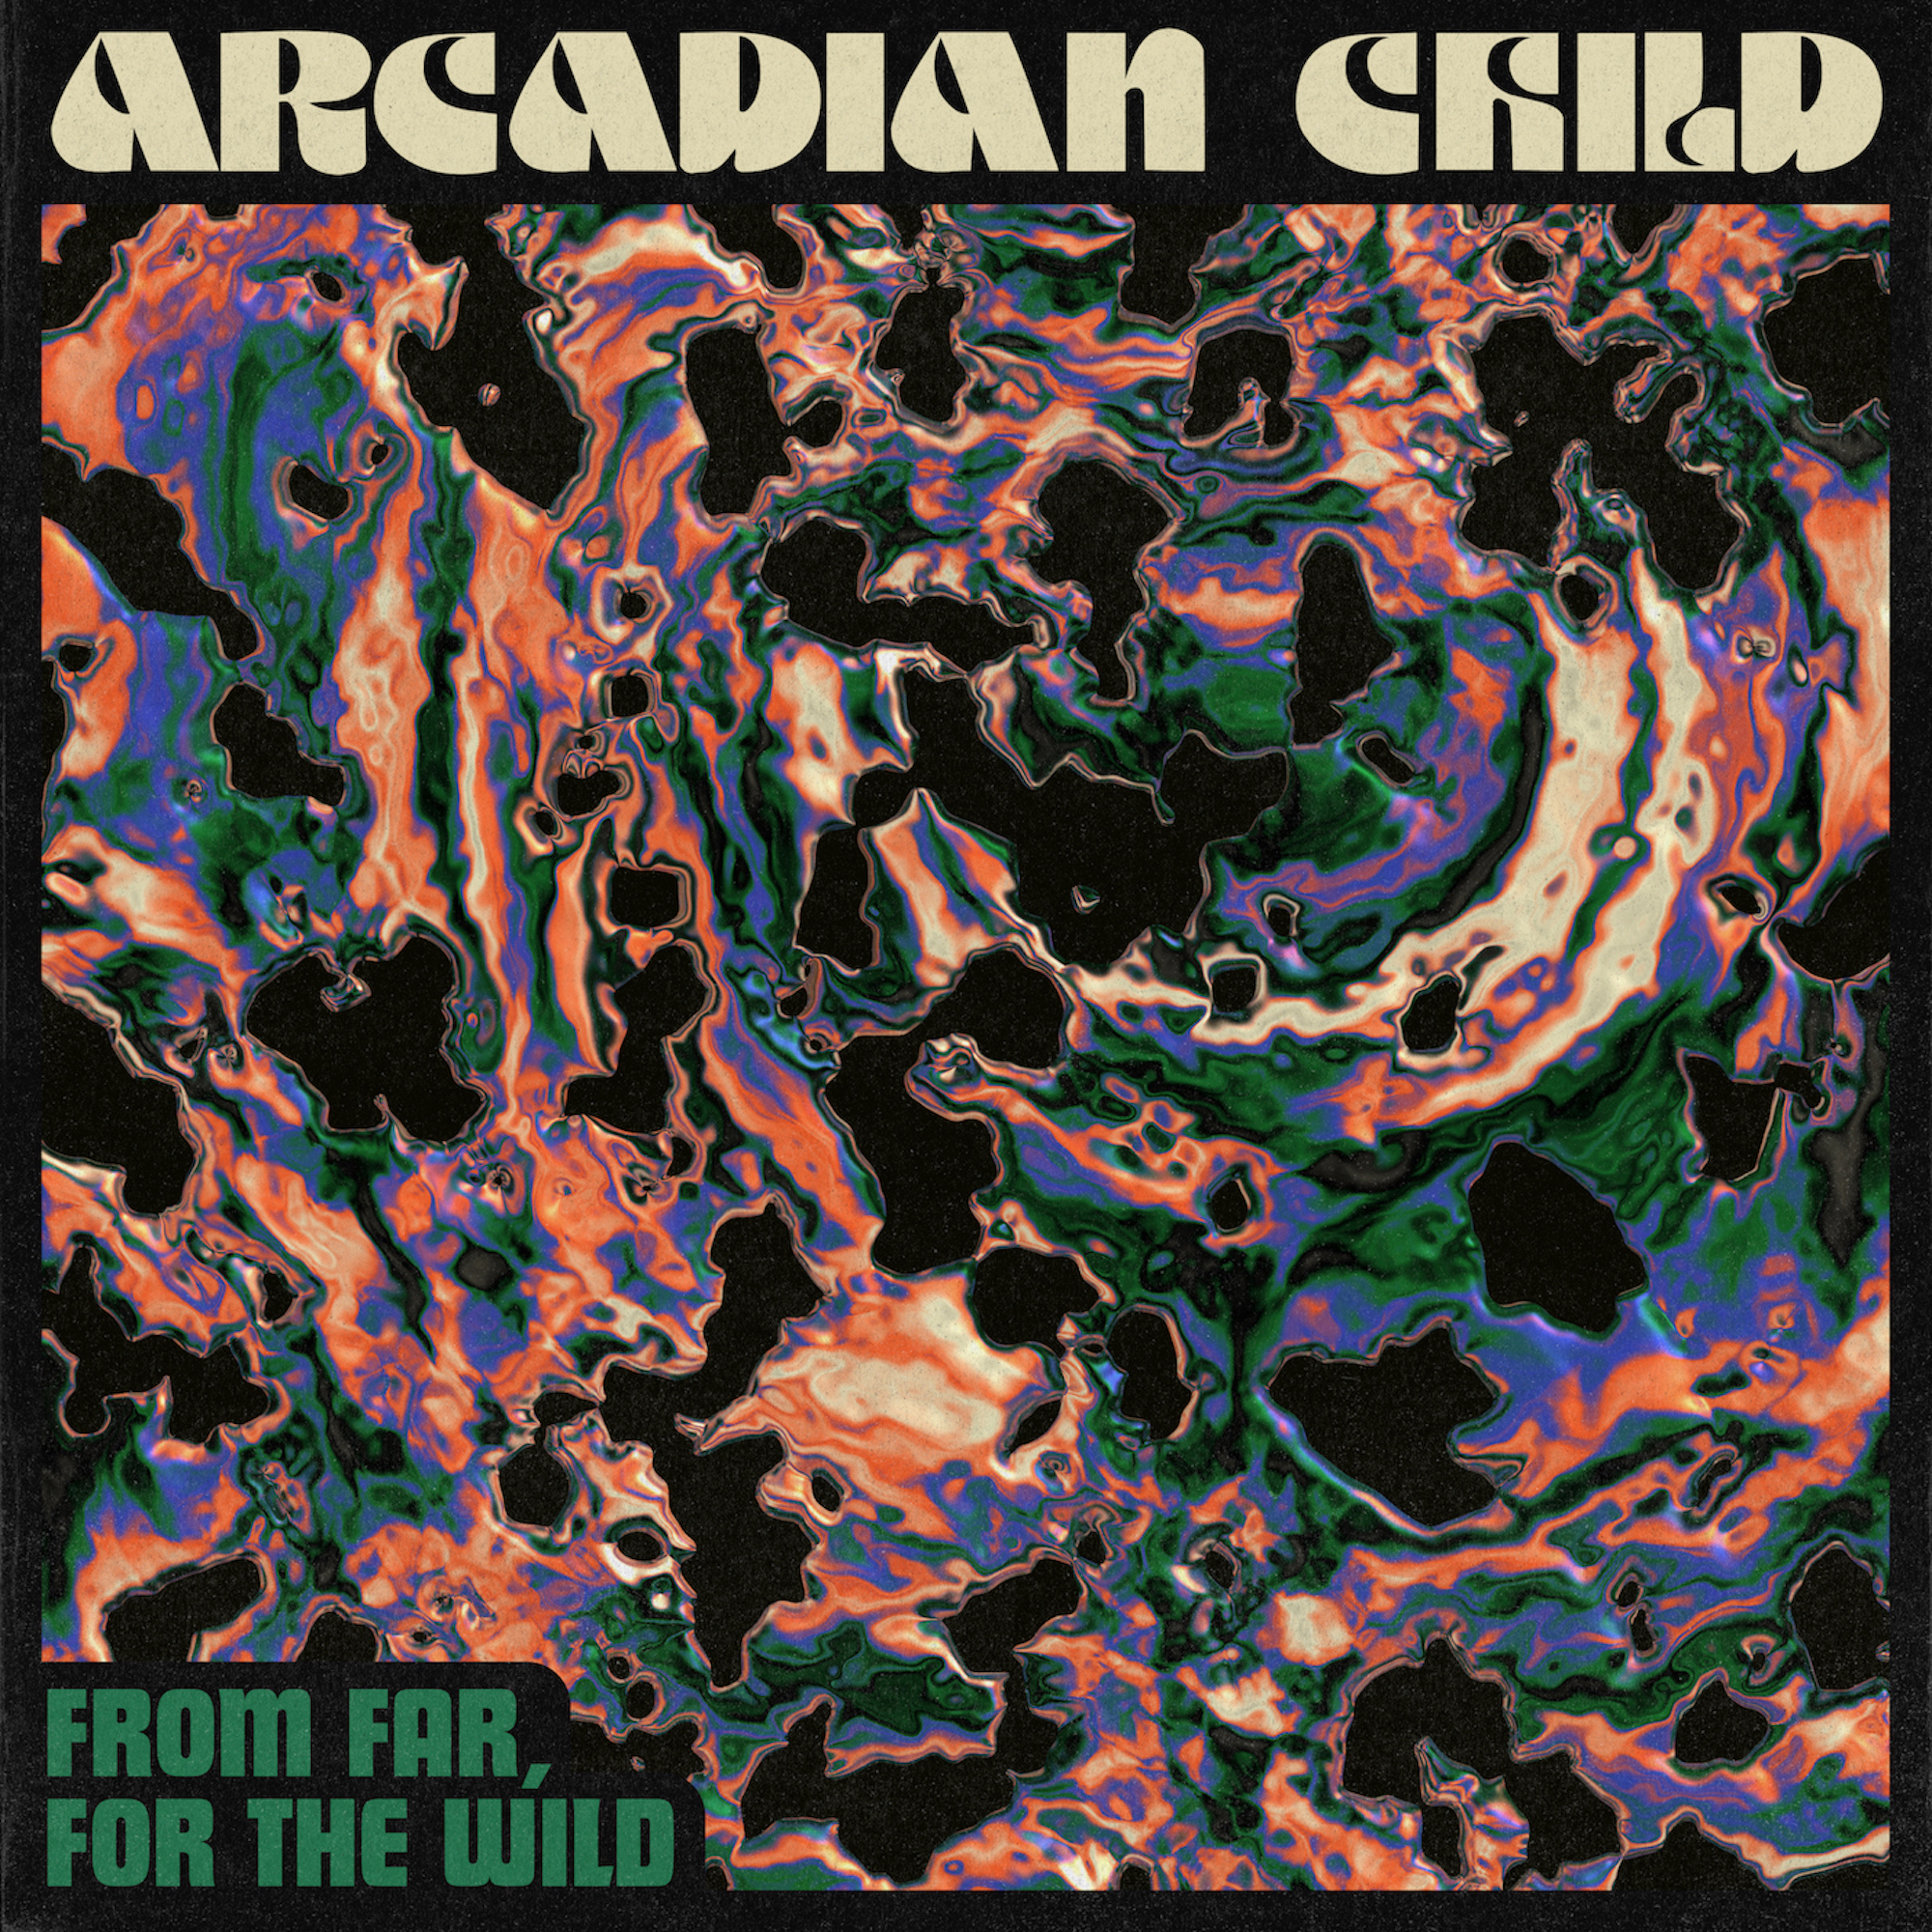 arcadian child from far for the wild